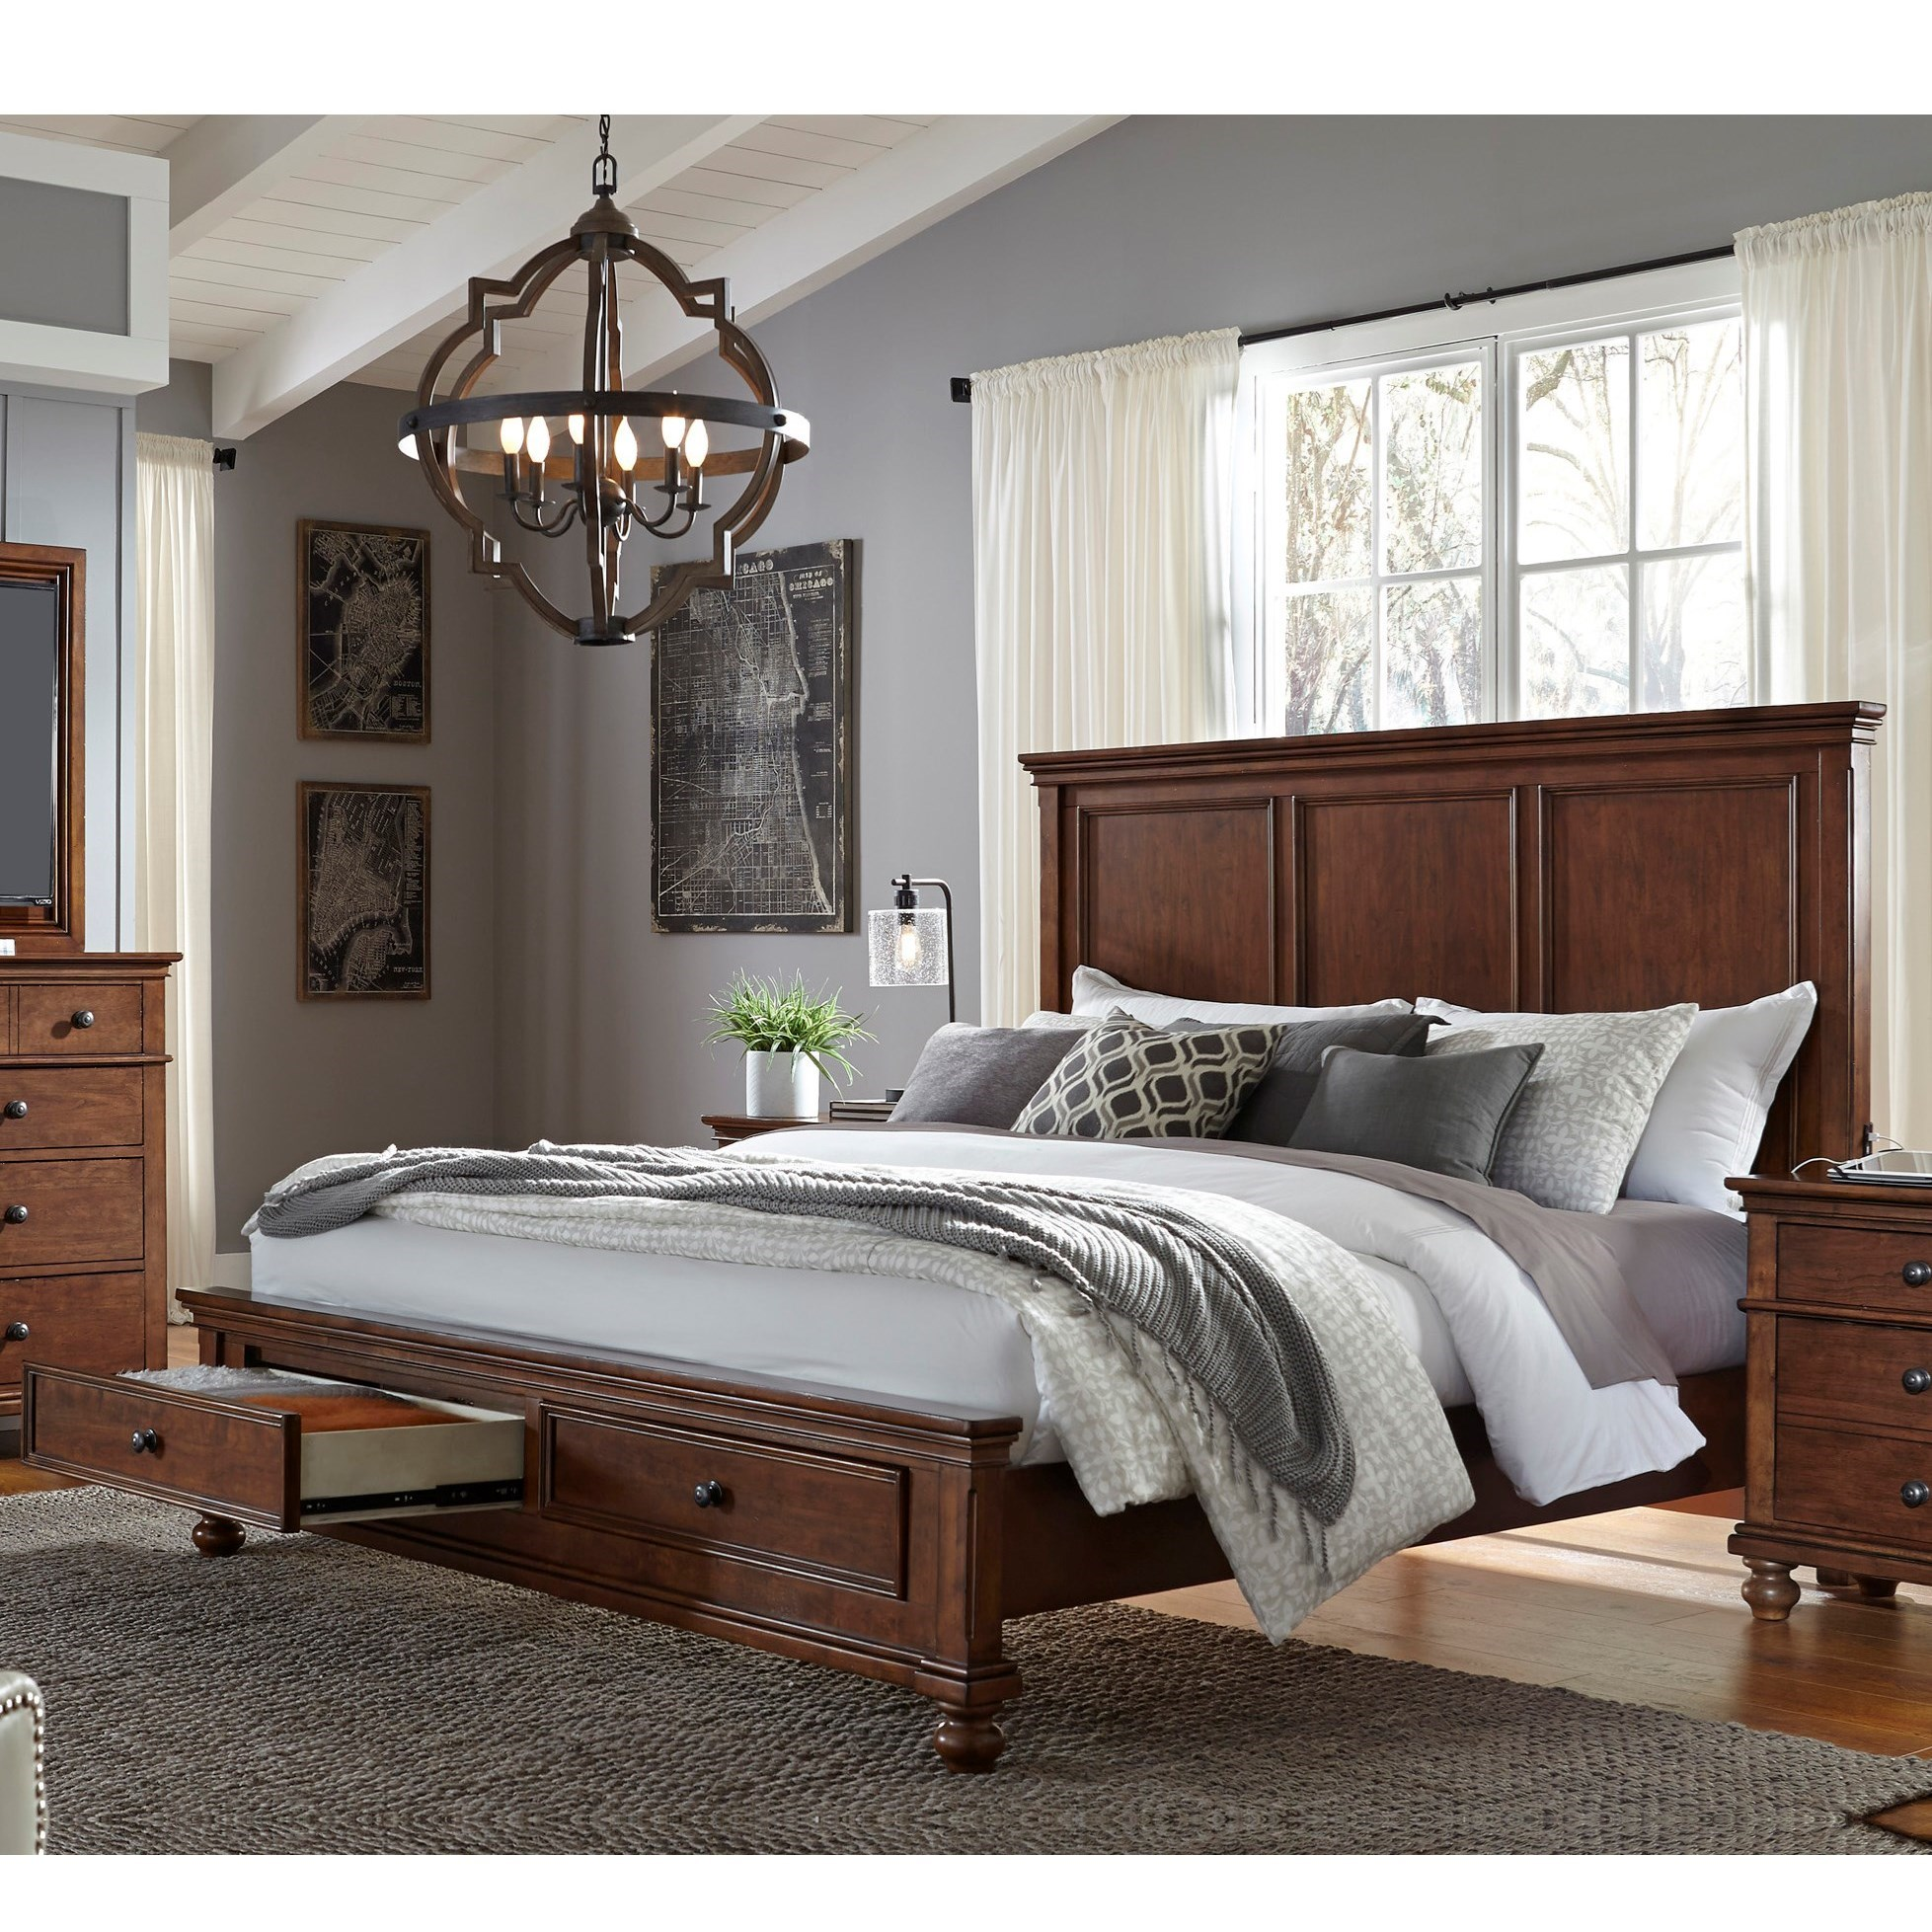 Aspenhome oxford transitional queen panel storage bed with for Panel bed mattress